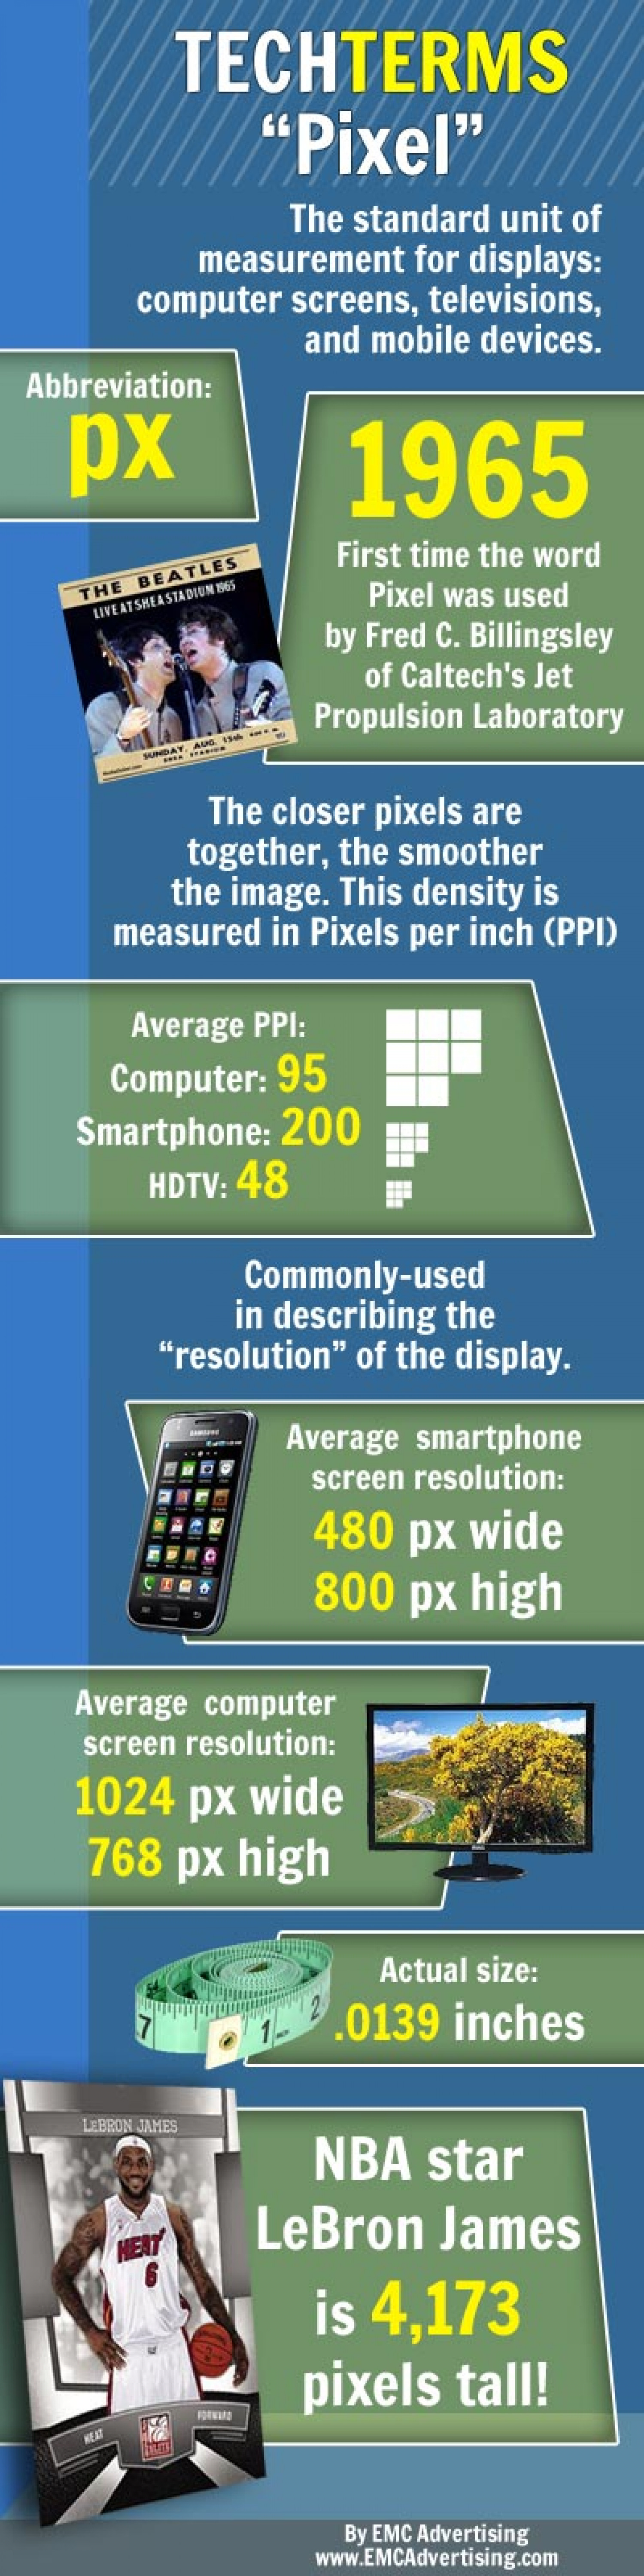 TechTerms - Pixel Infographic